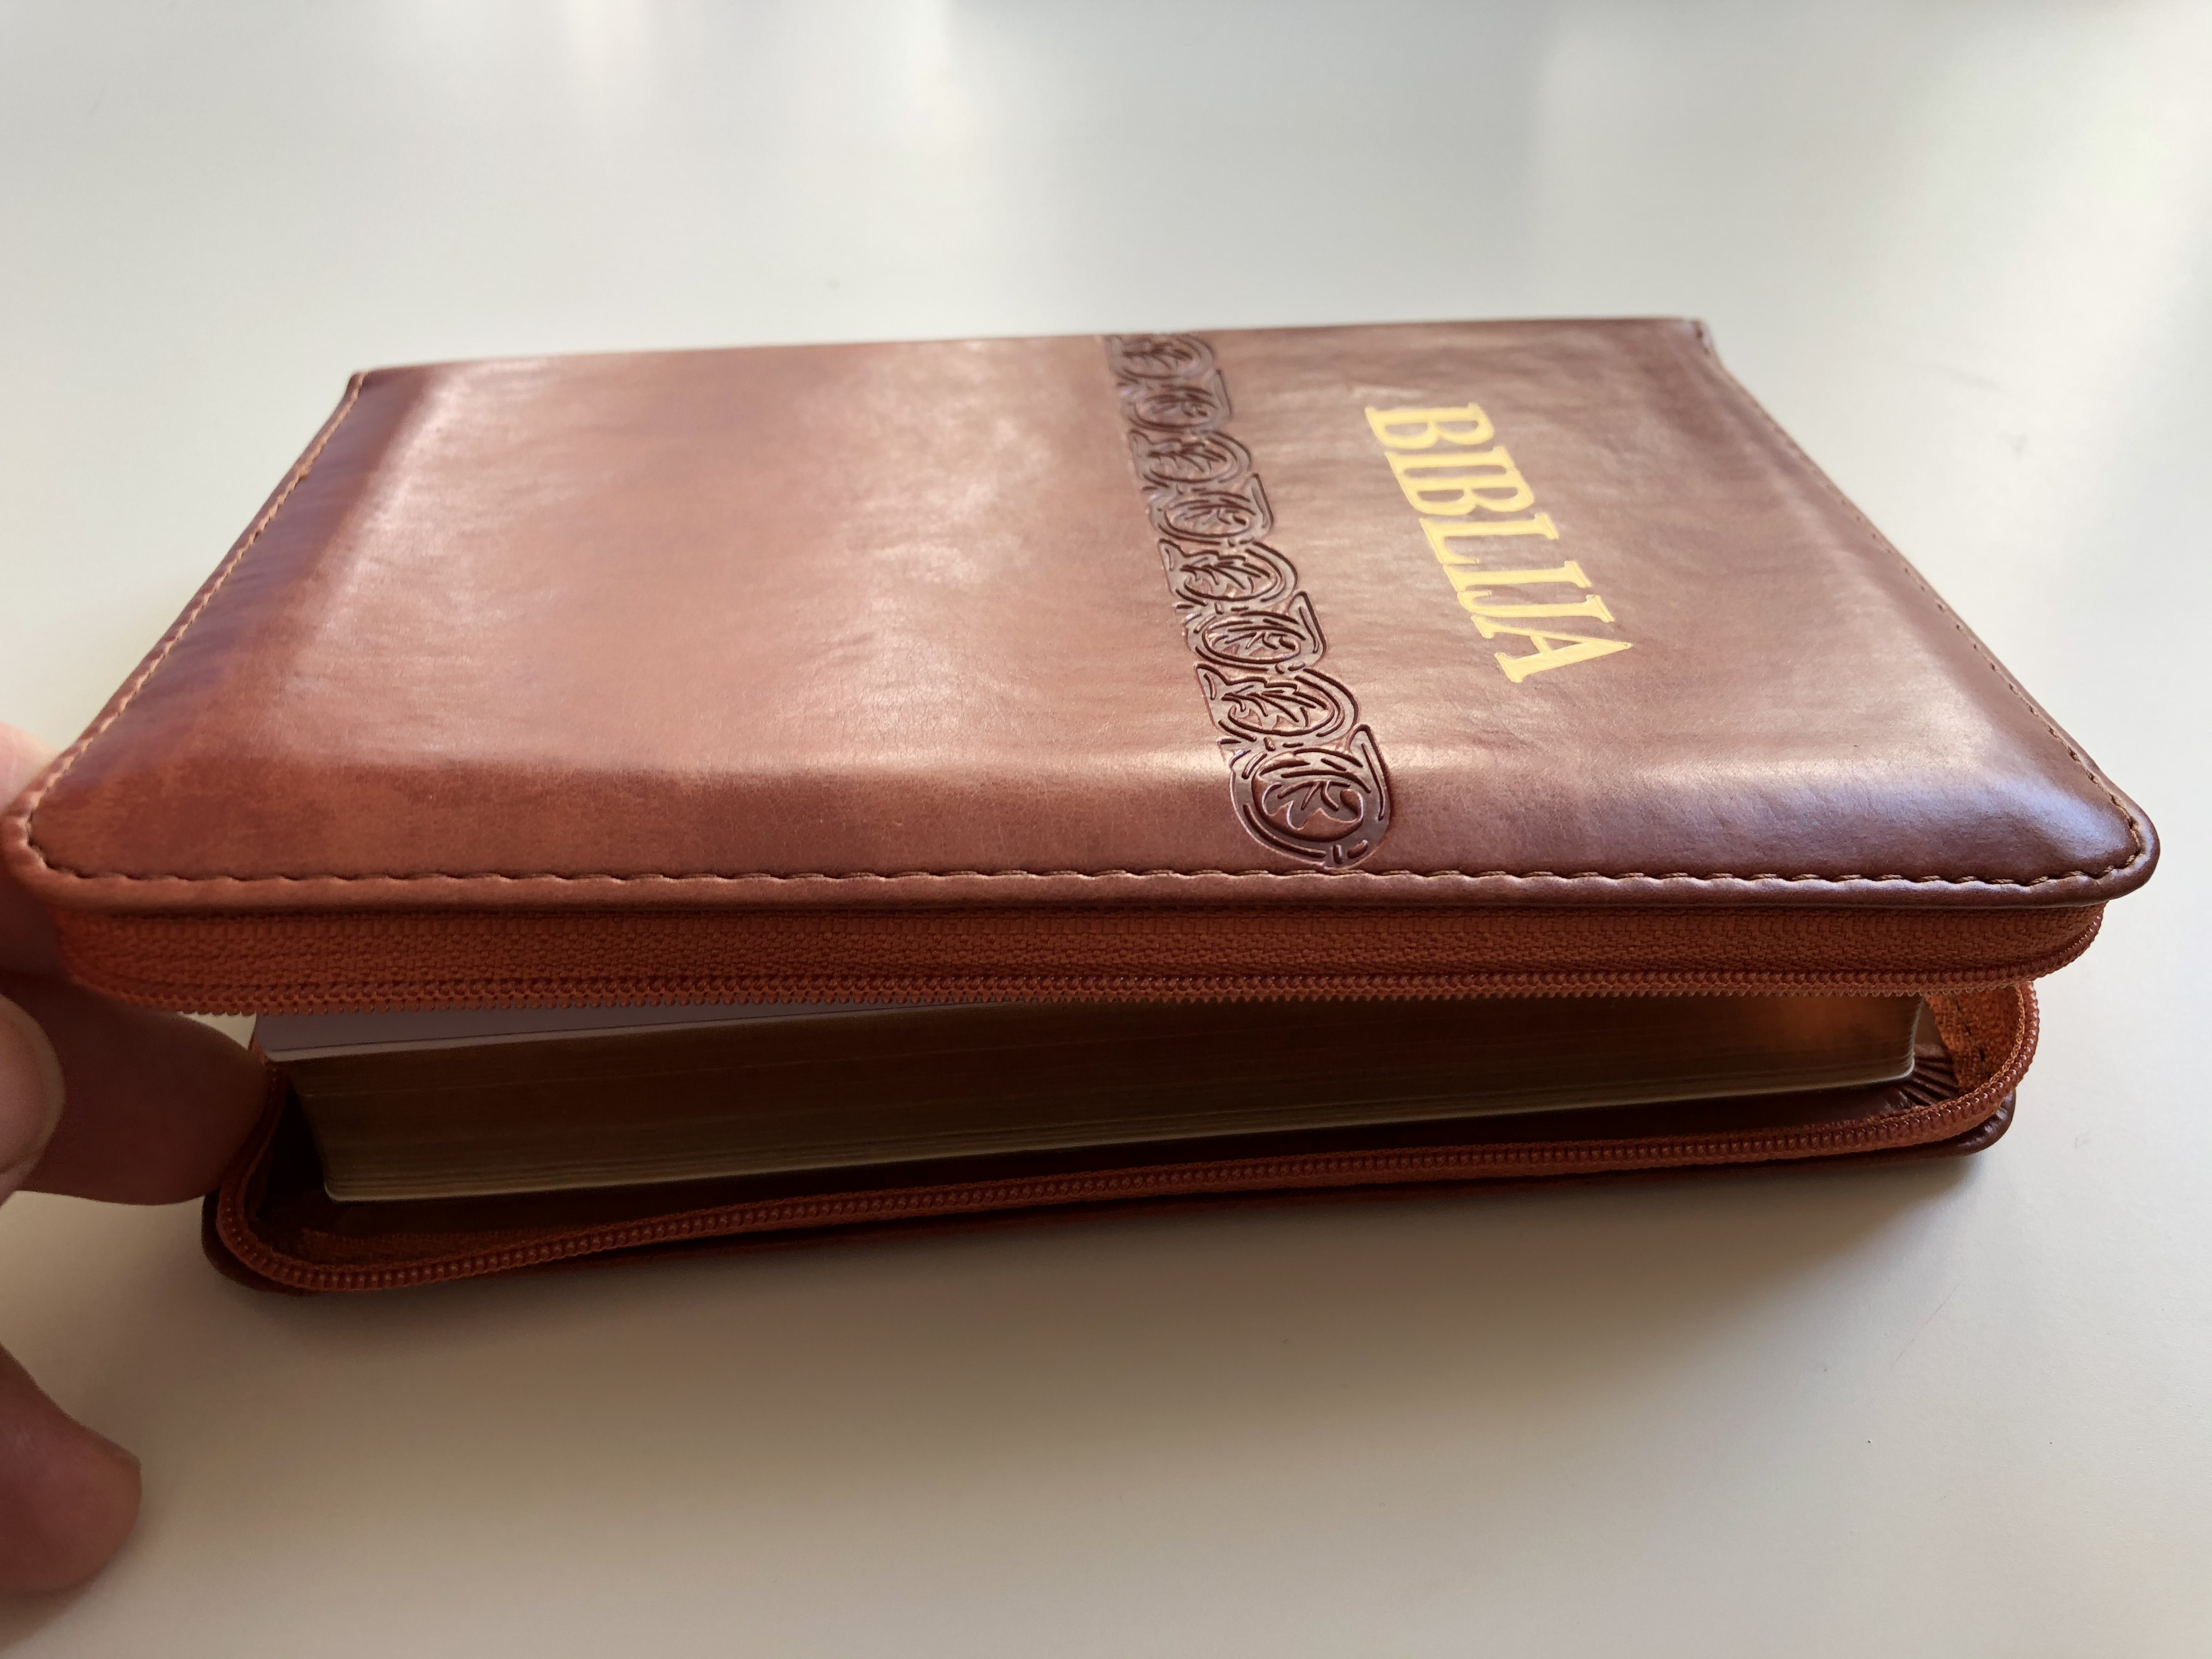 biblija-holy-bible-in-croatian-language-brown-leather-bound-with-zipper-small-size-4.jpg